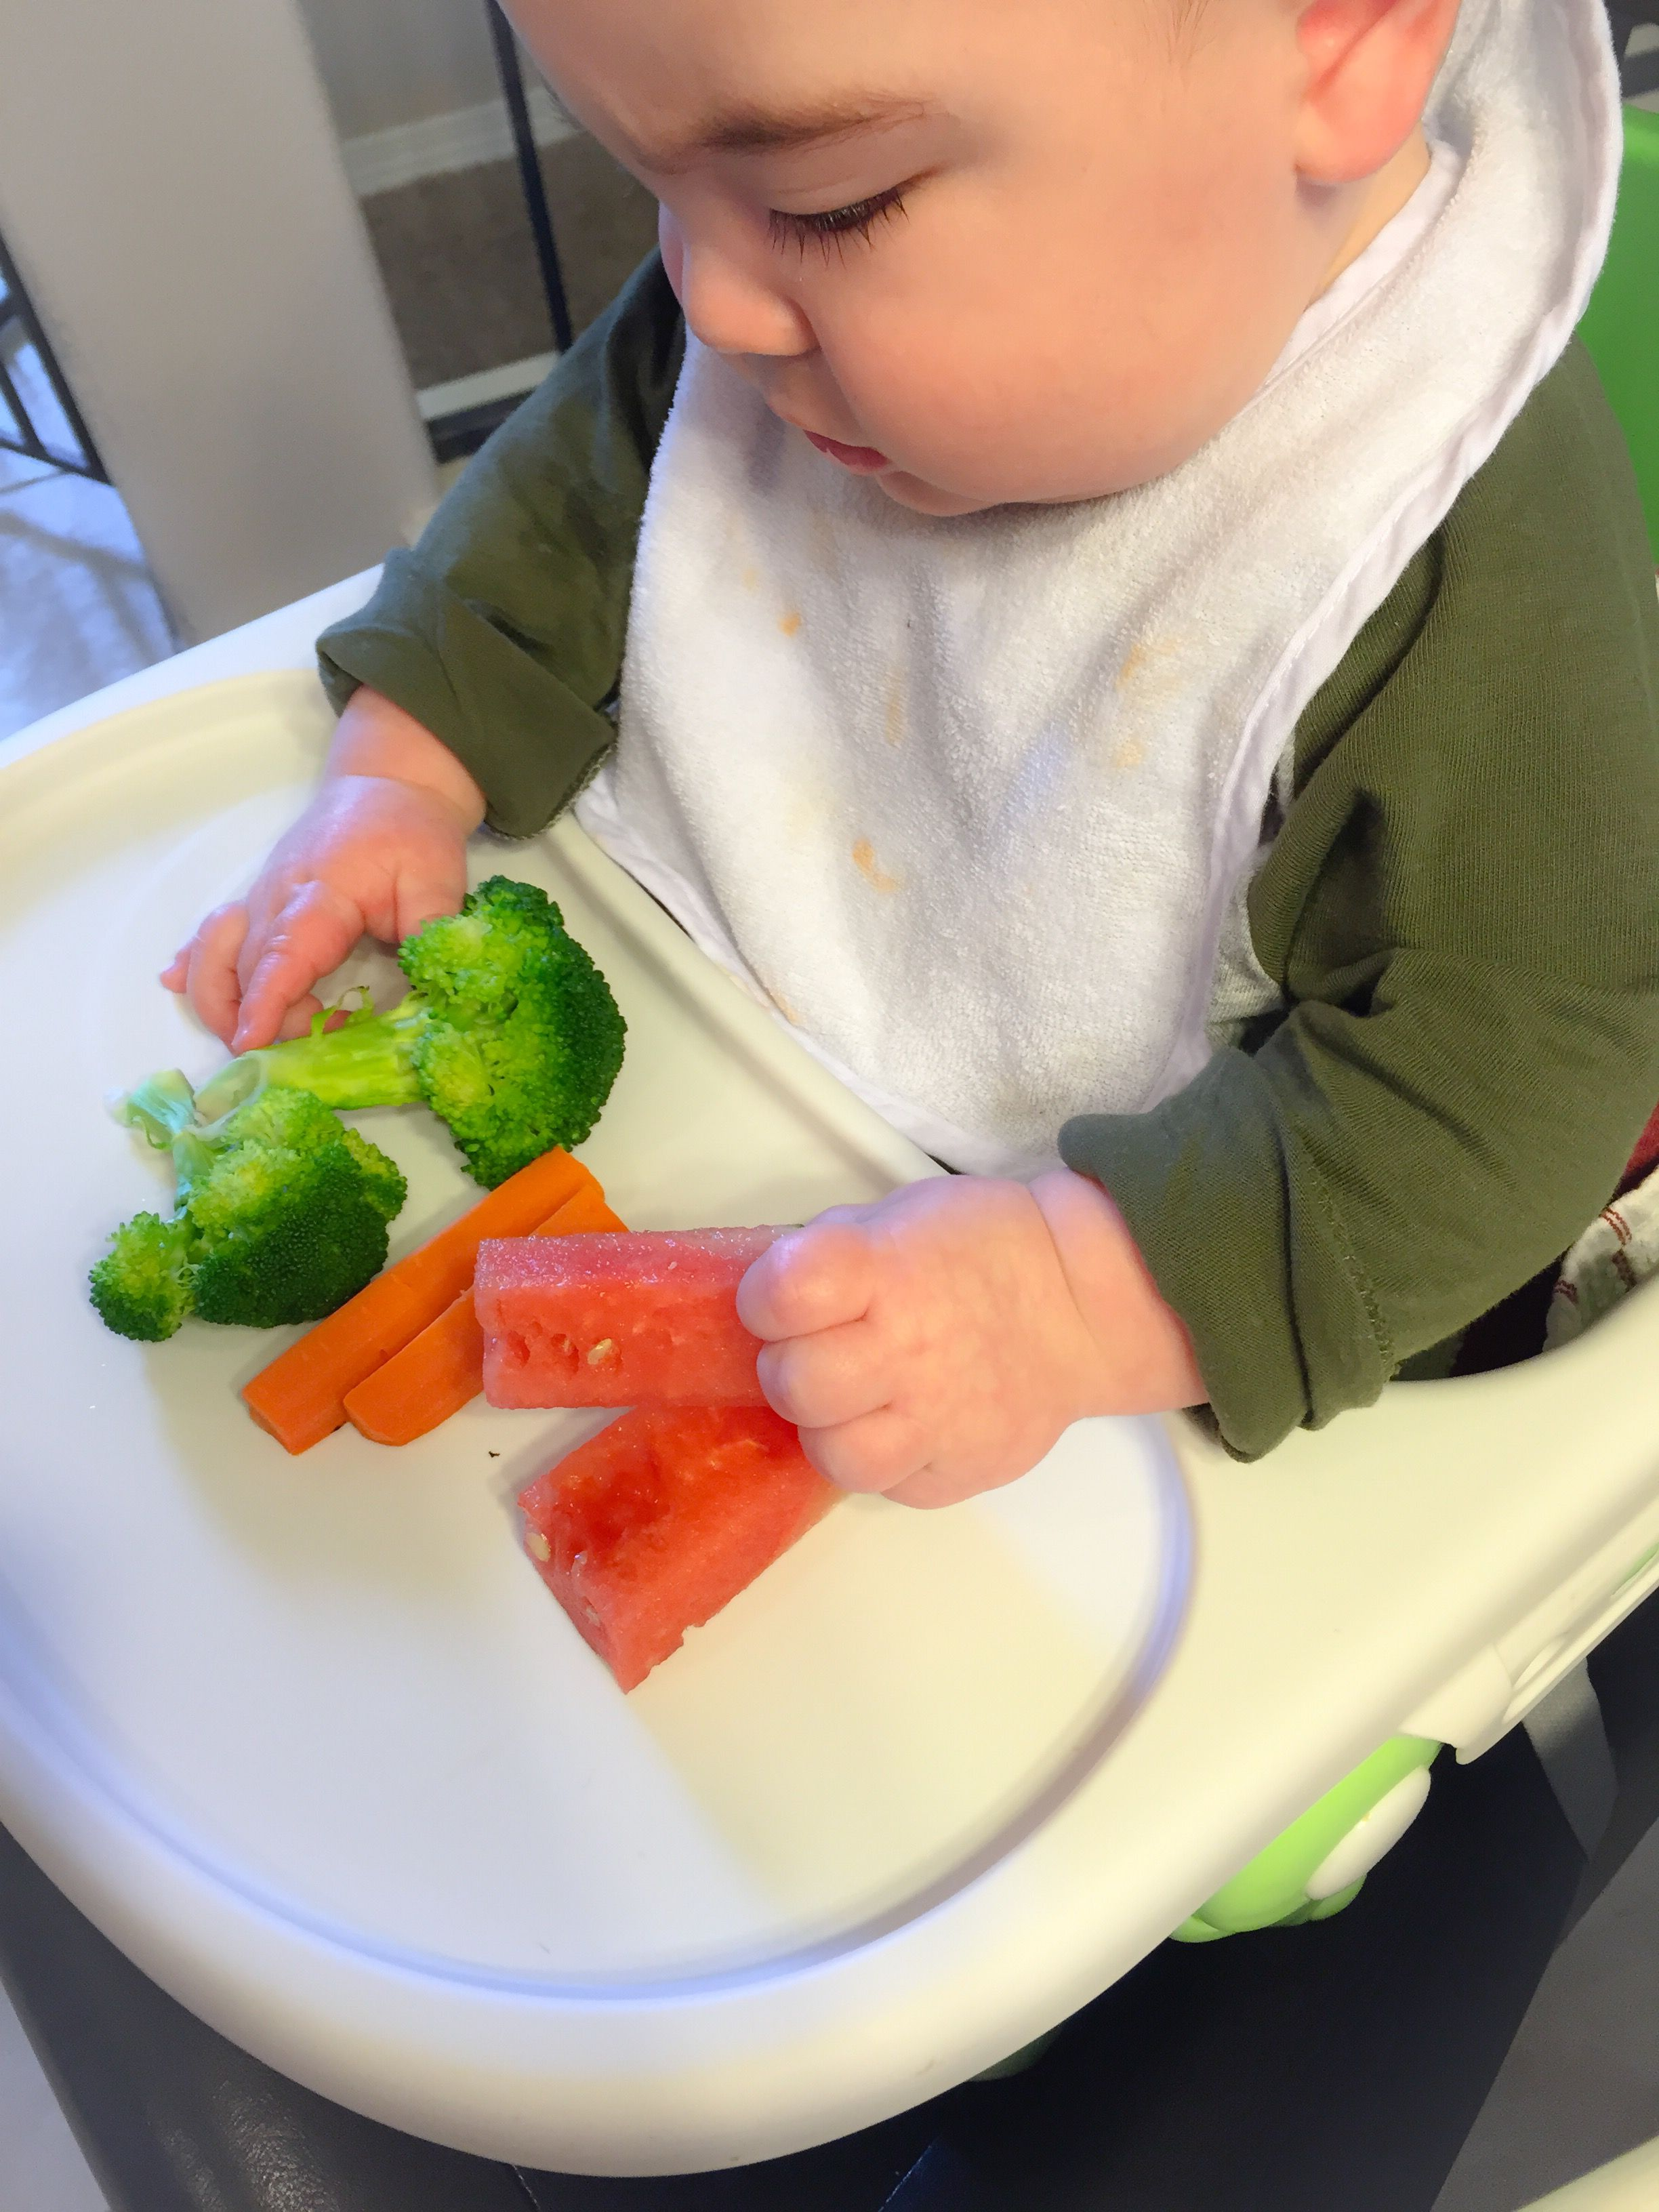 Baby led weaning food ideas for 6 month olds! Baby led